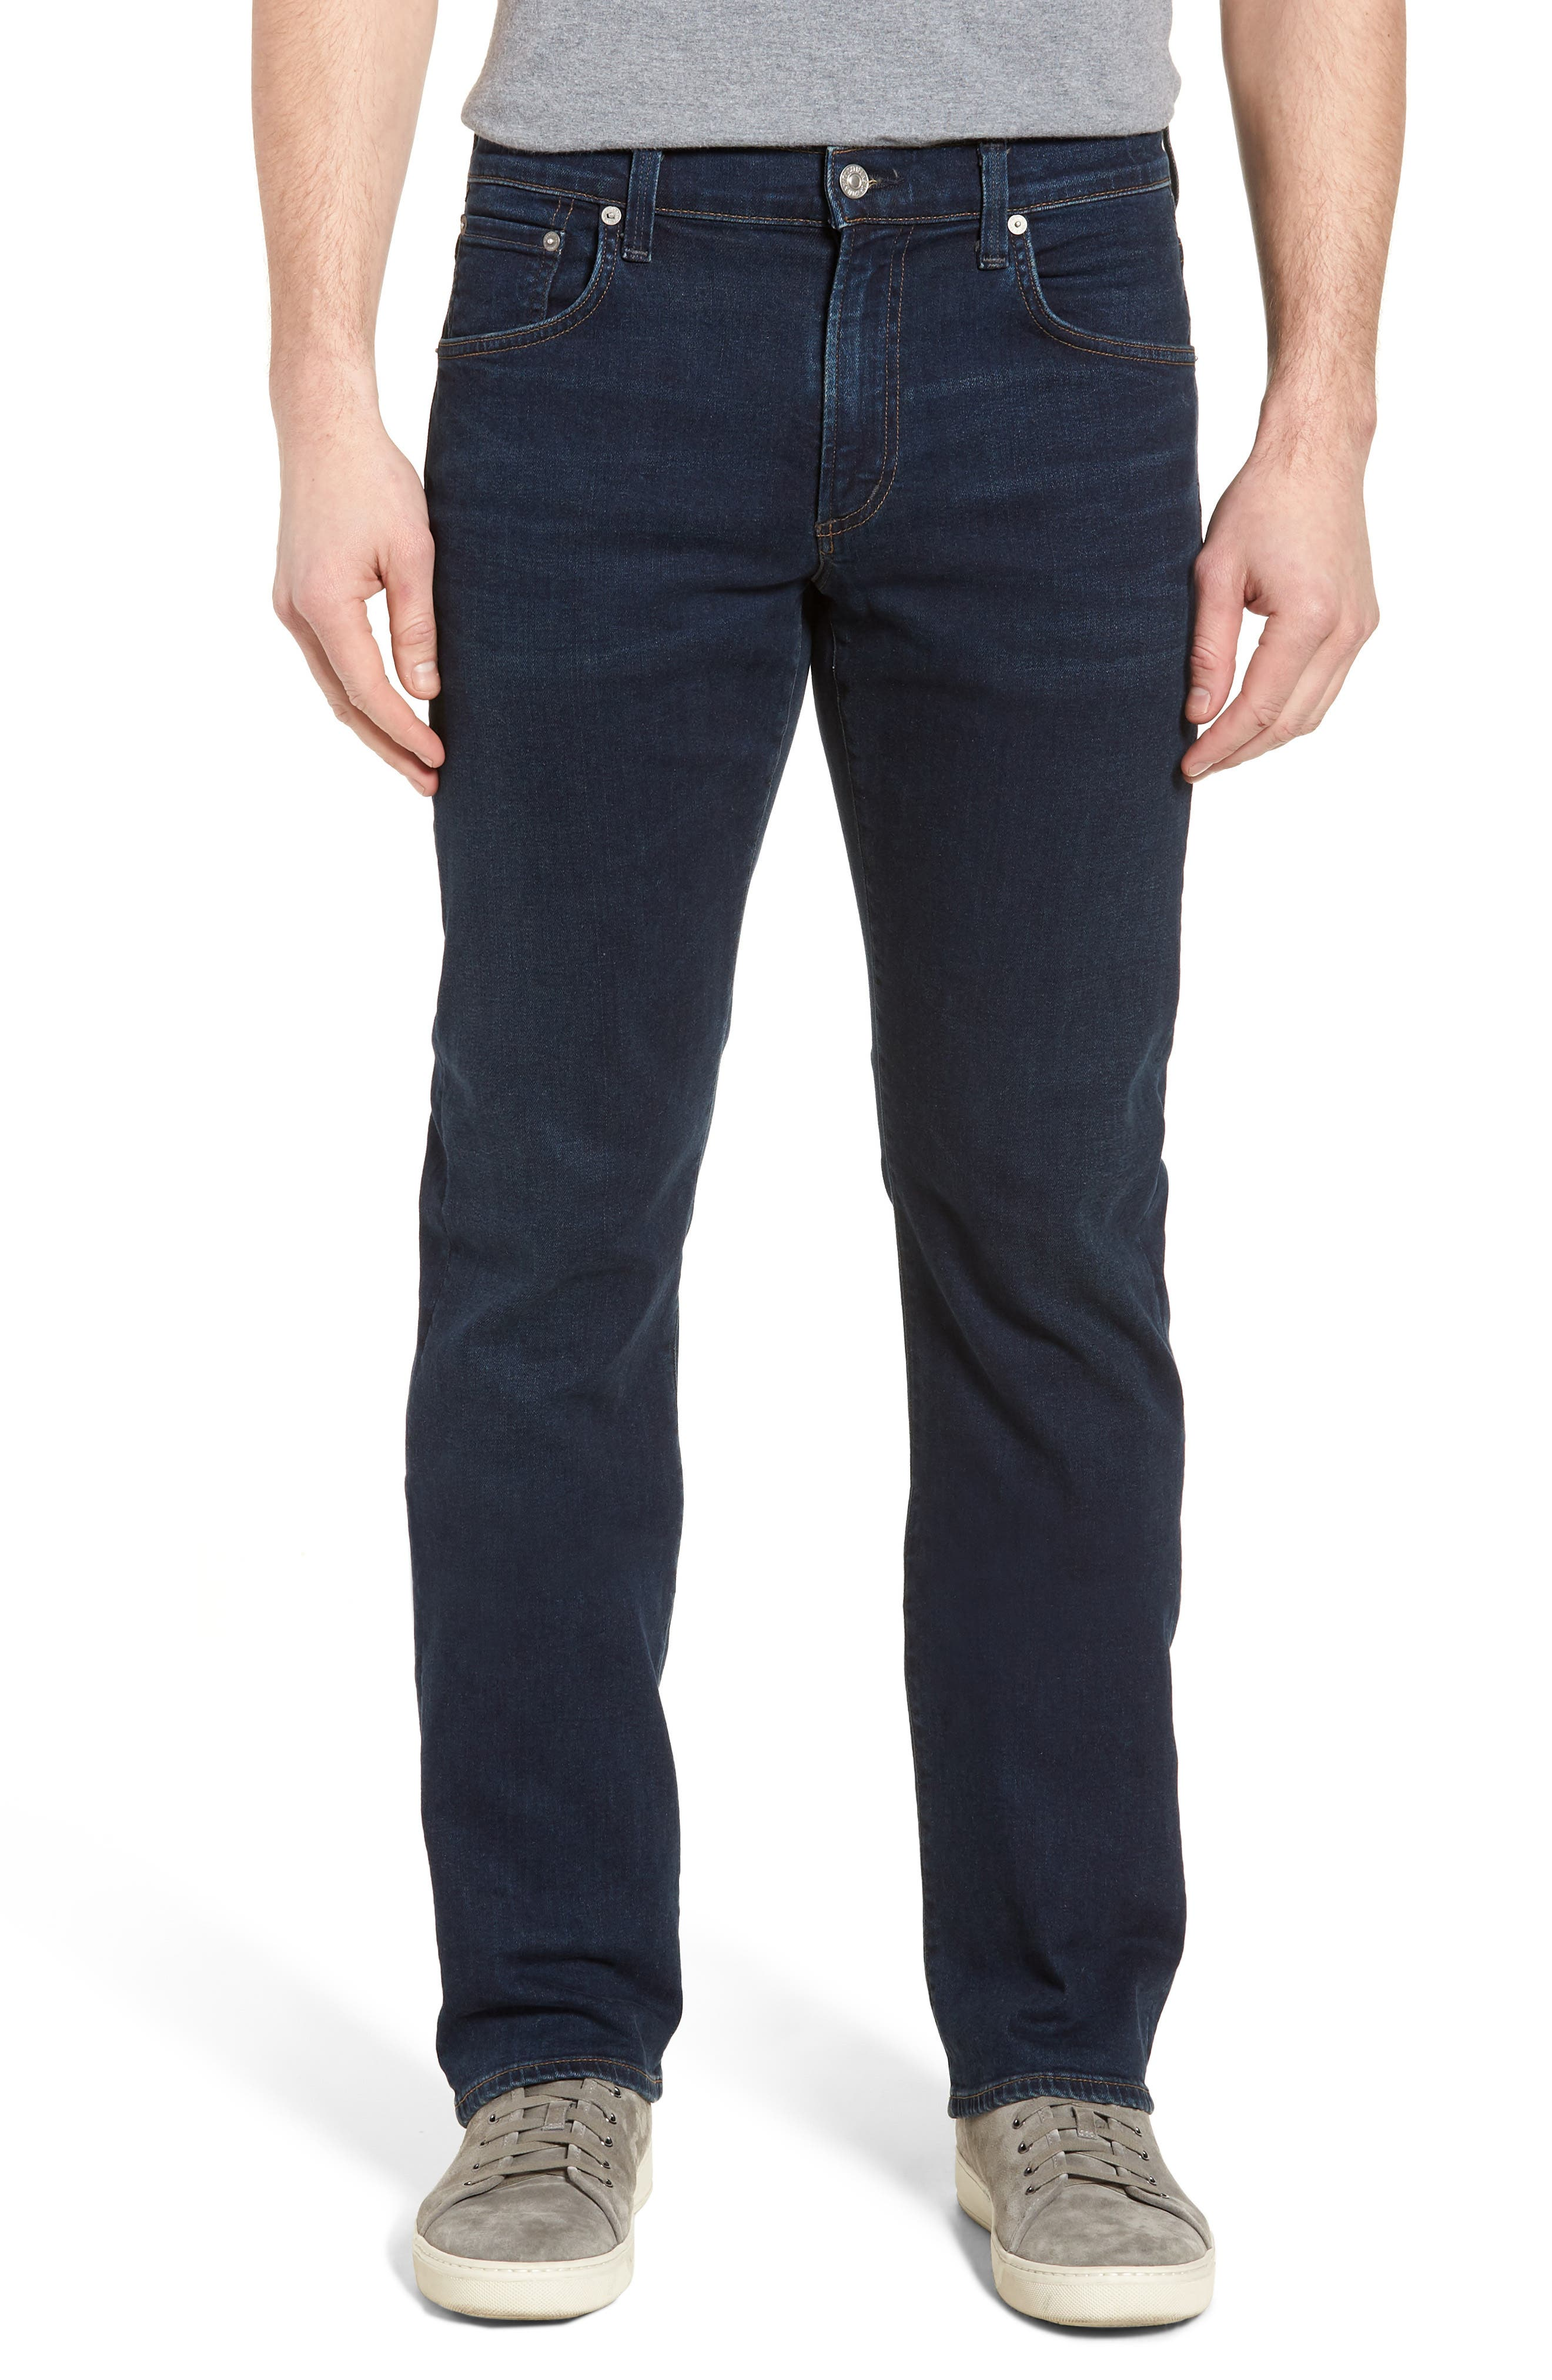 Perform - Sid Straight Leg Jeans,                         Main,                         color, EVERSON